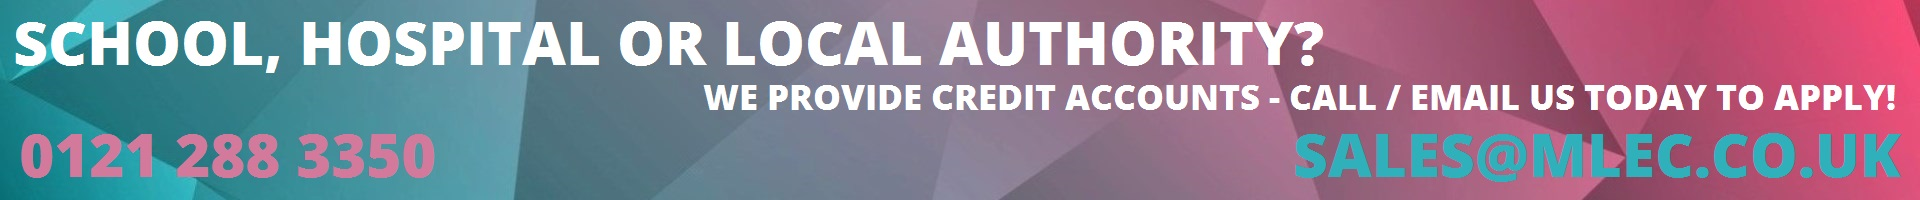 CREDIT ACCOUNT BANNER